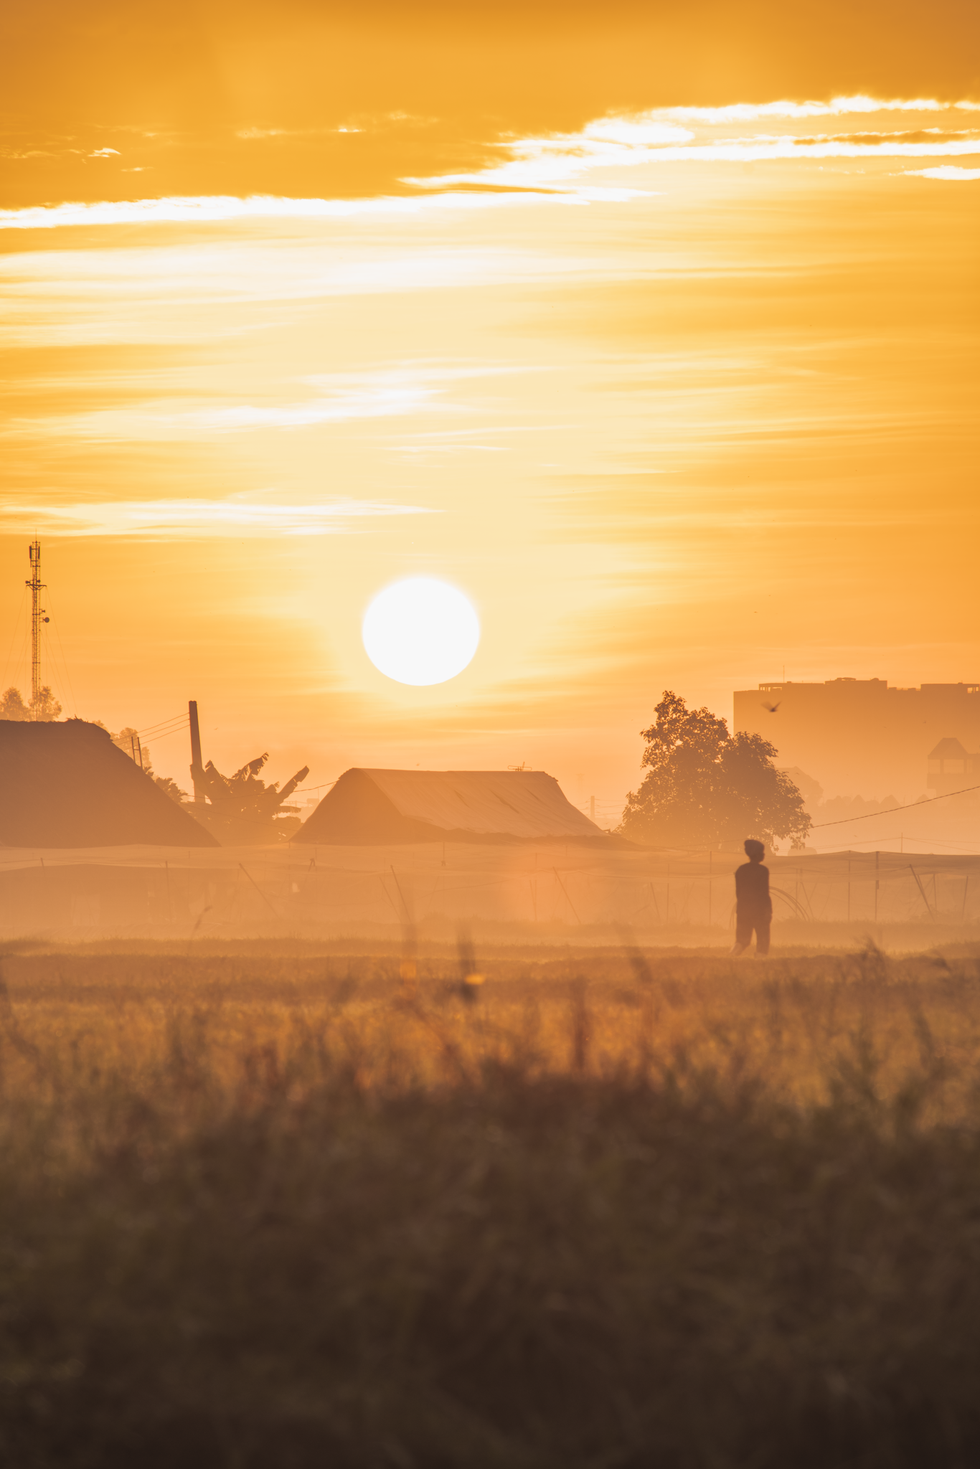 Morning lights dye things with a golden color on a field in Ho Chi Minh City's Hoc Mon District. Photo: Vo Hung Manh